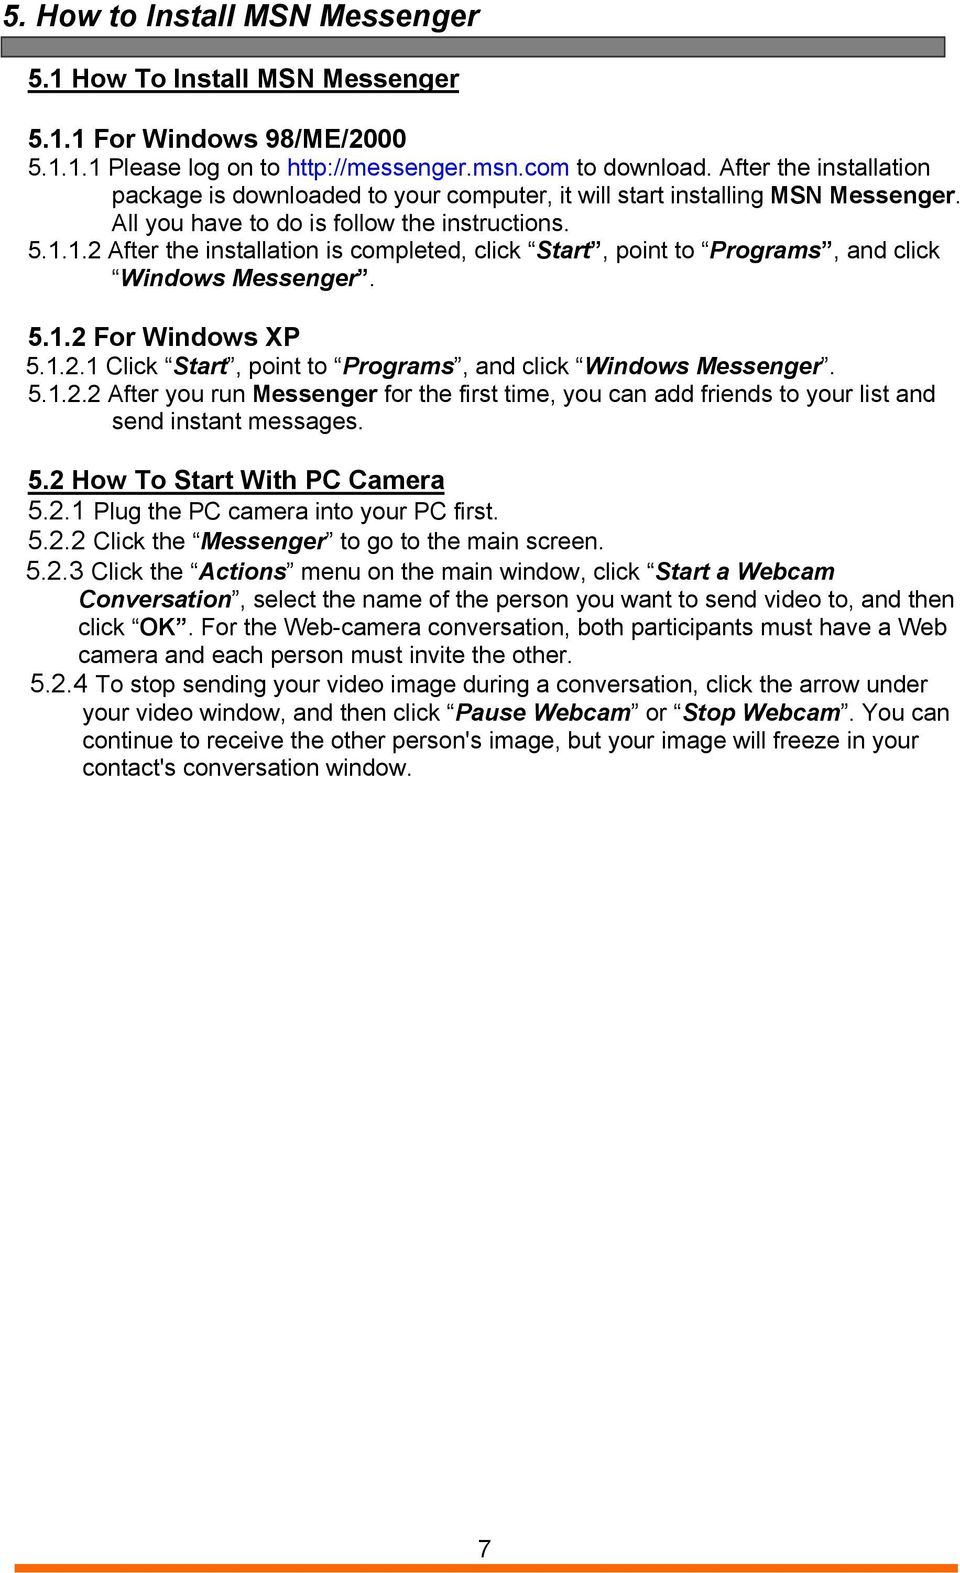 1.2 After the installation is completed, click Start, point to Programs, and click Windows Messenger. 5.1.2 For Windows XP 5.1.2.1 Click Start, point to Programs, and click Windows Messenger. 5.1.2.2 After you run Messenger for the first time, you can add friends to your list and send instant messages.